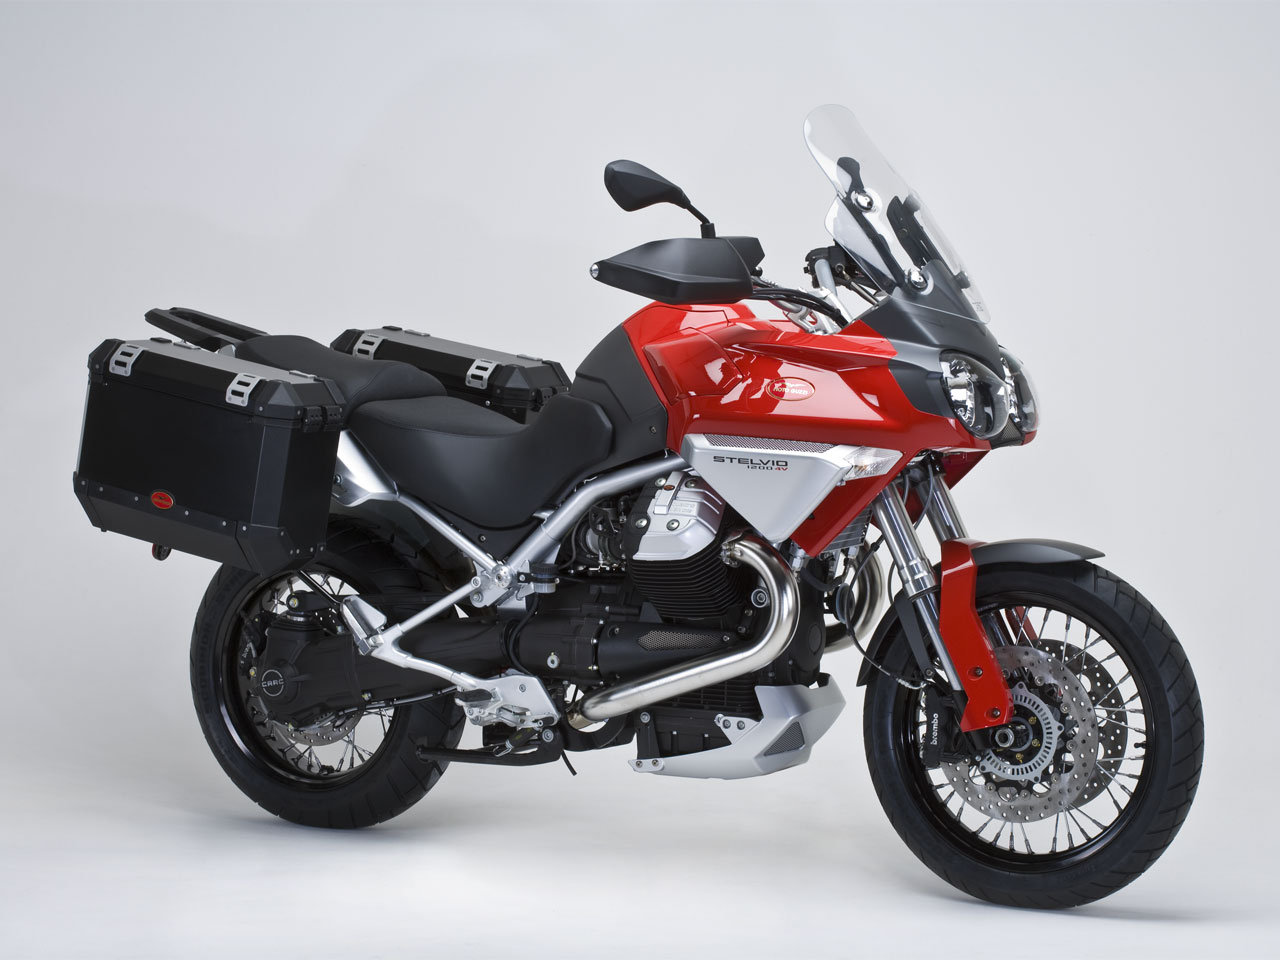 Moto guzzi stelvio photo - 3